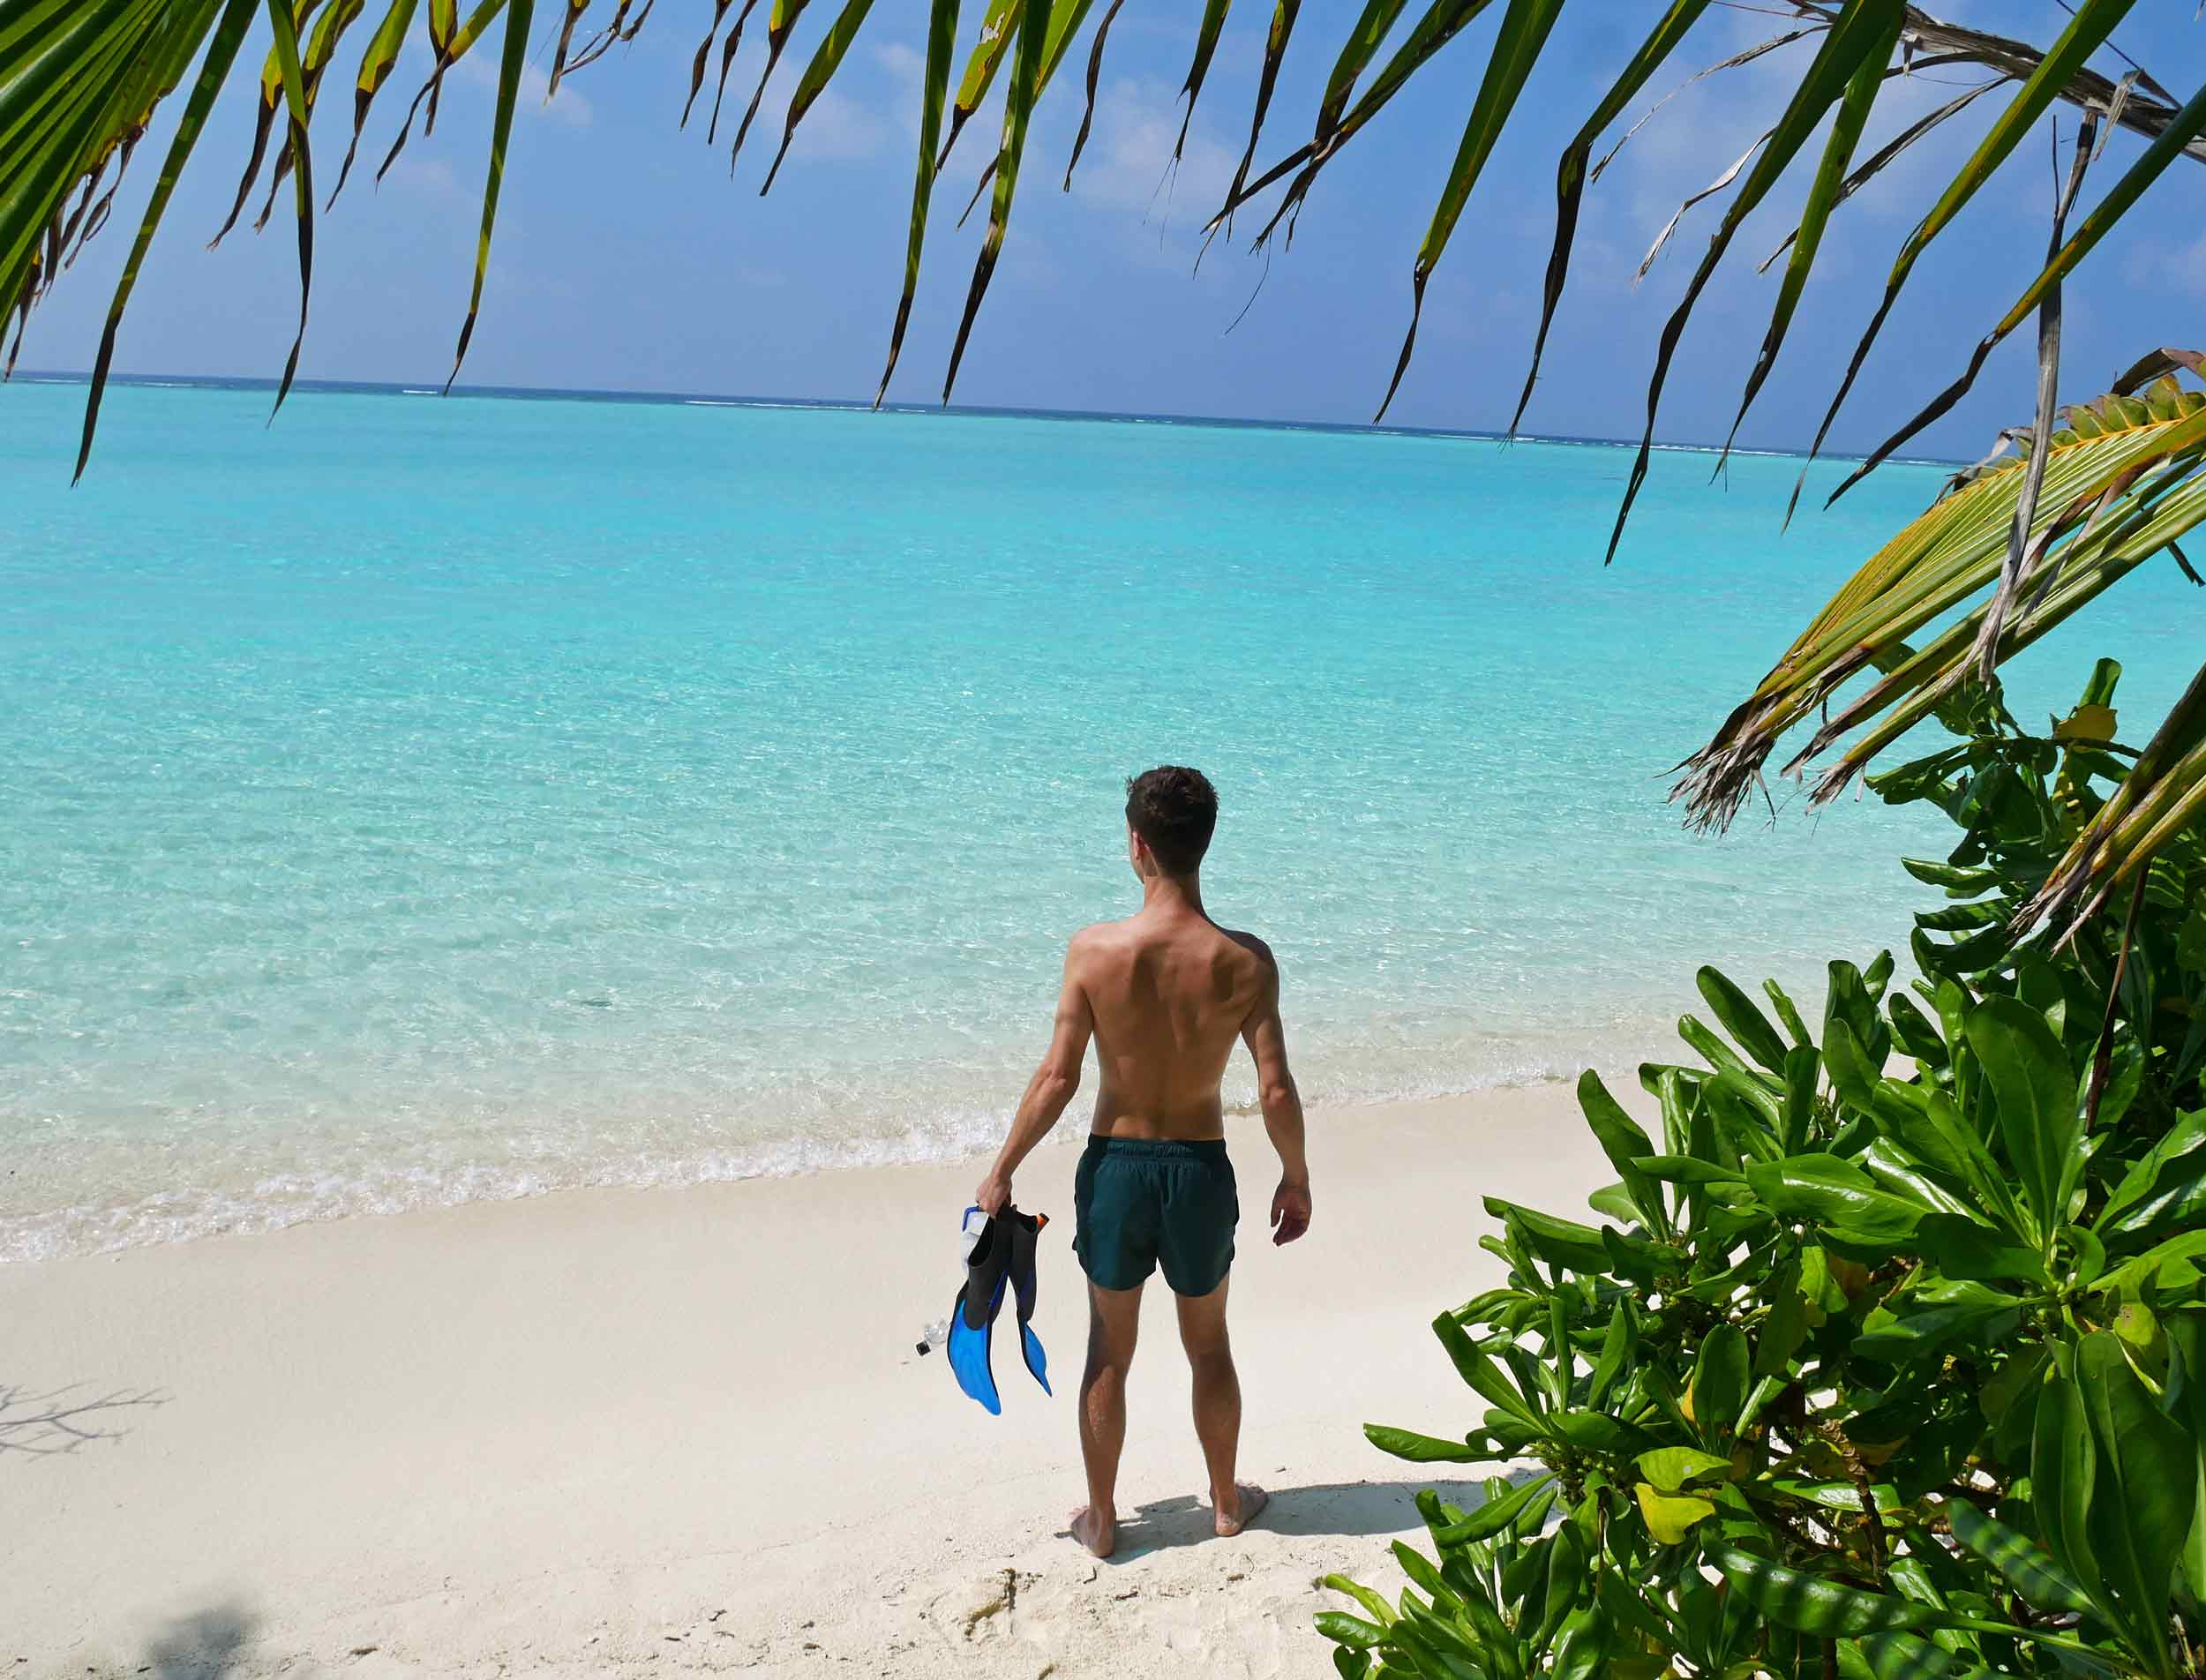 Martin getting ready to dive in for a snorkel – the reefs off the 'bikini beach' of Thoddoo are teaming with sea life!